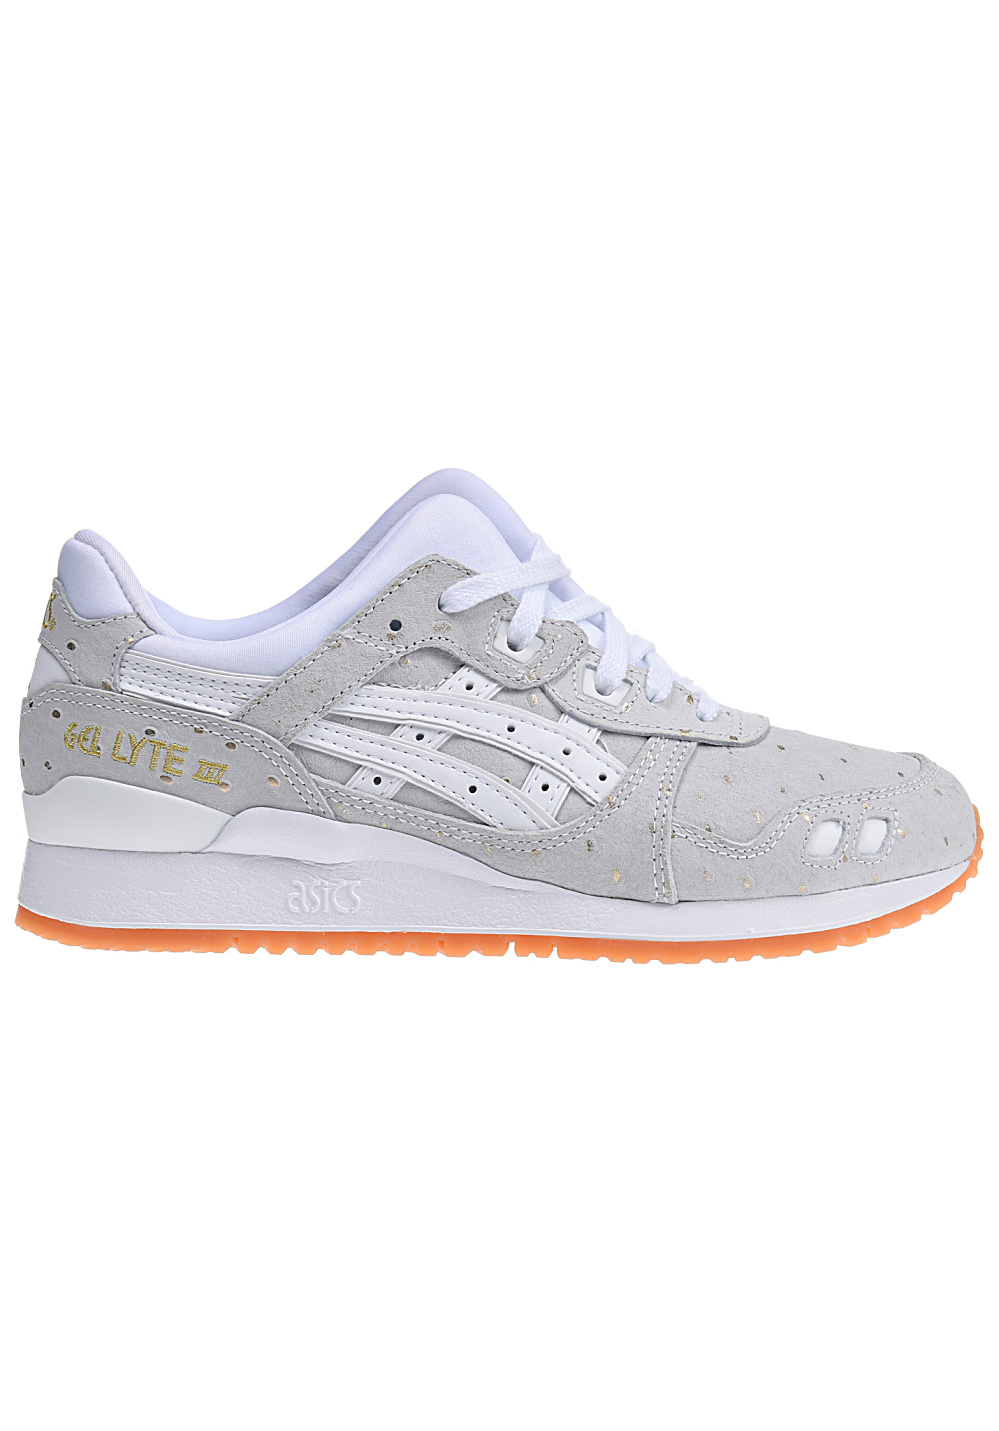 Asics Lyte Iii Blanc Rp8rnqa4 Planet Tiger Sports Baskets Femme Pour EUqBTTC